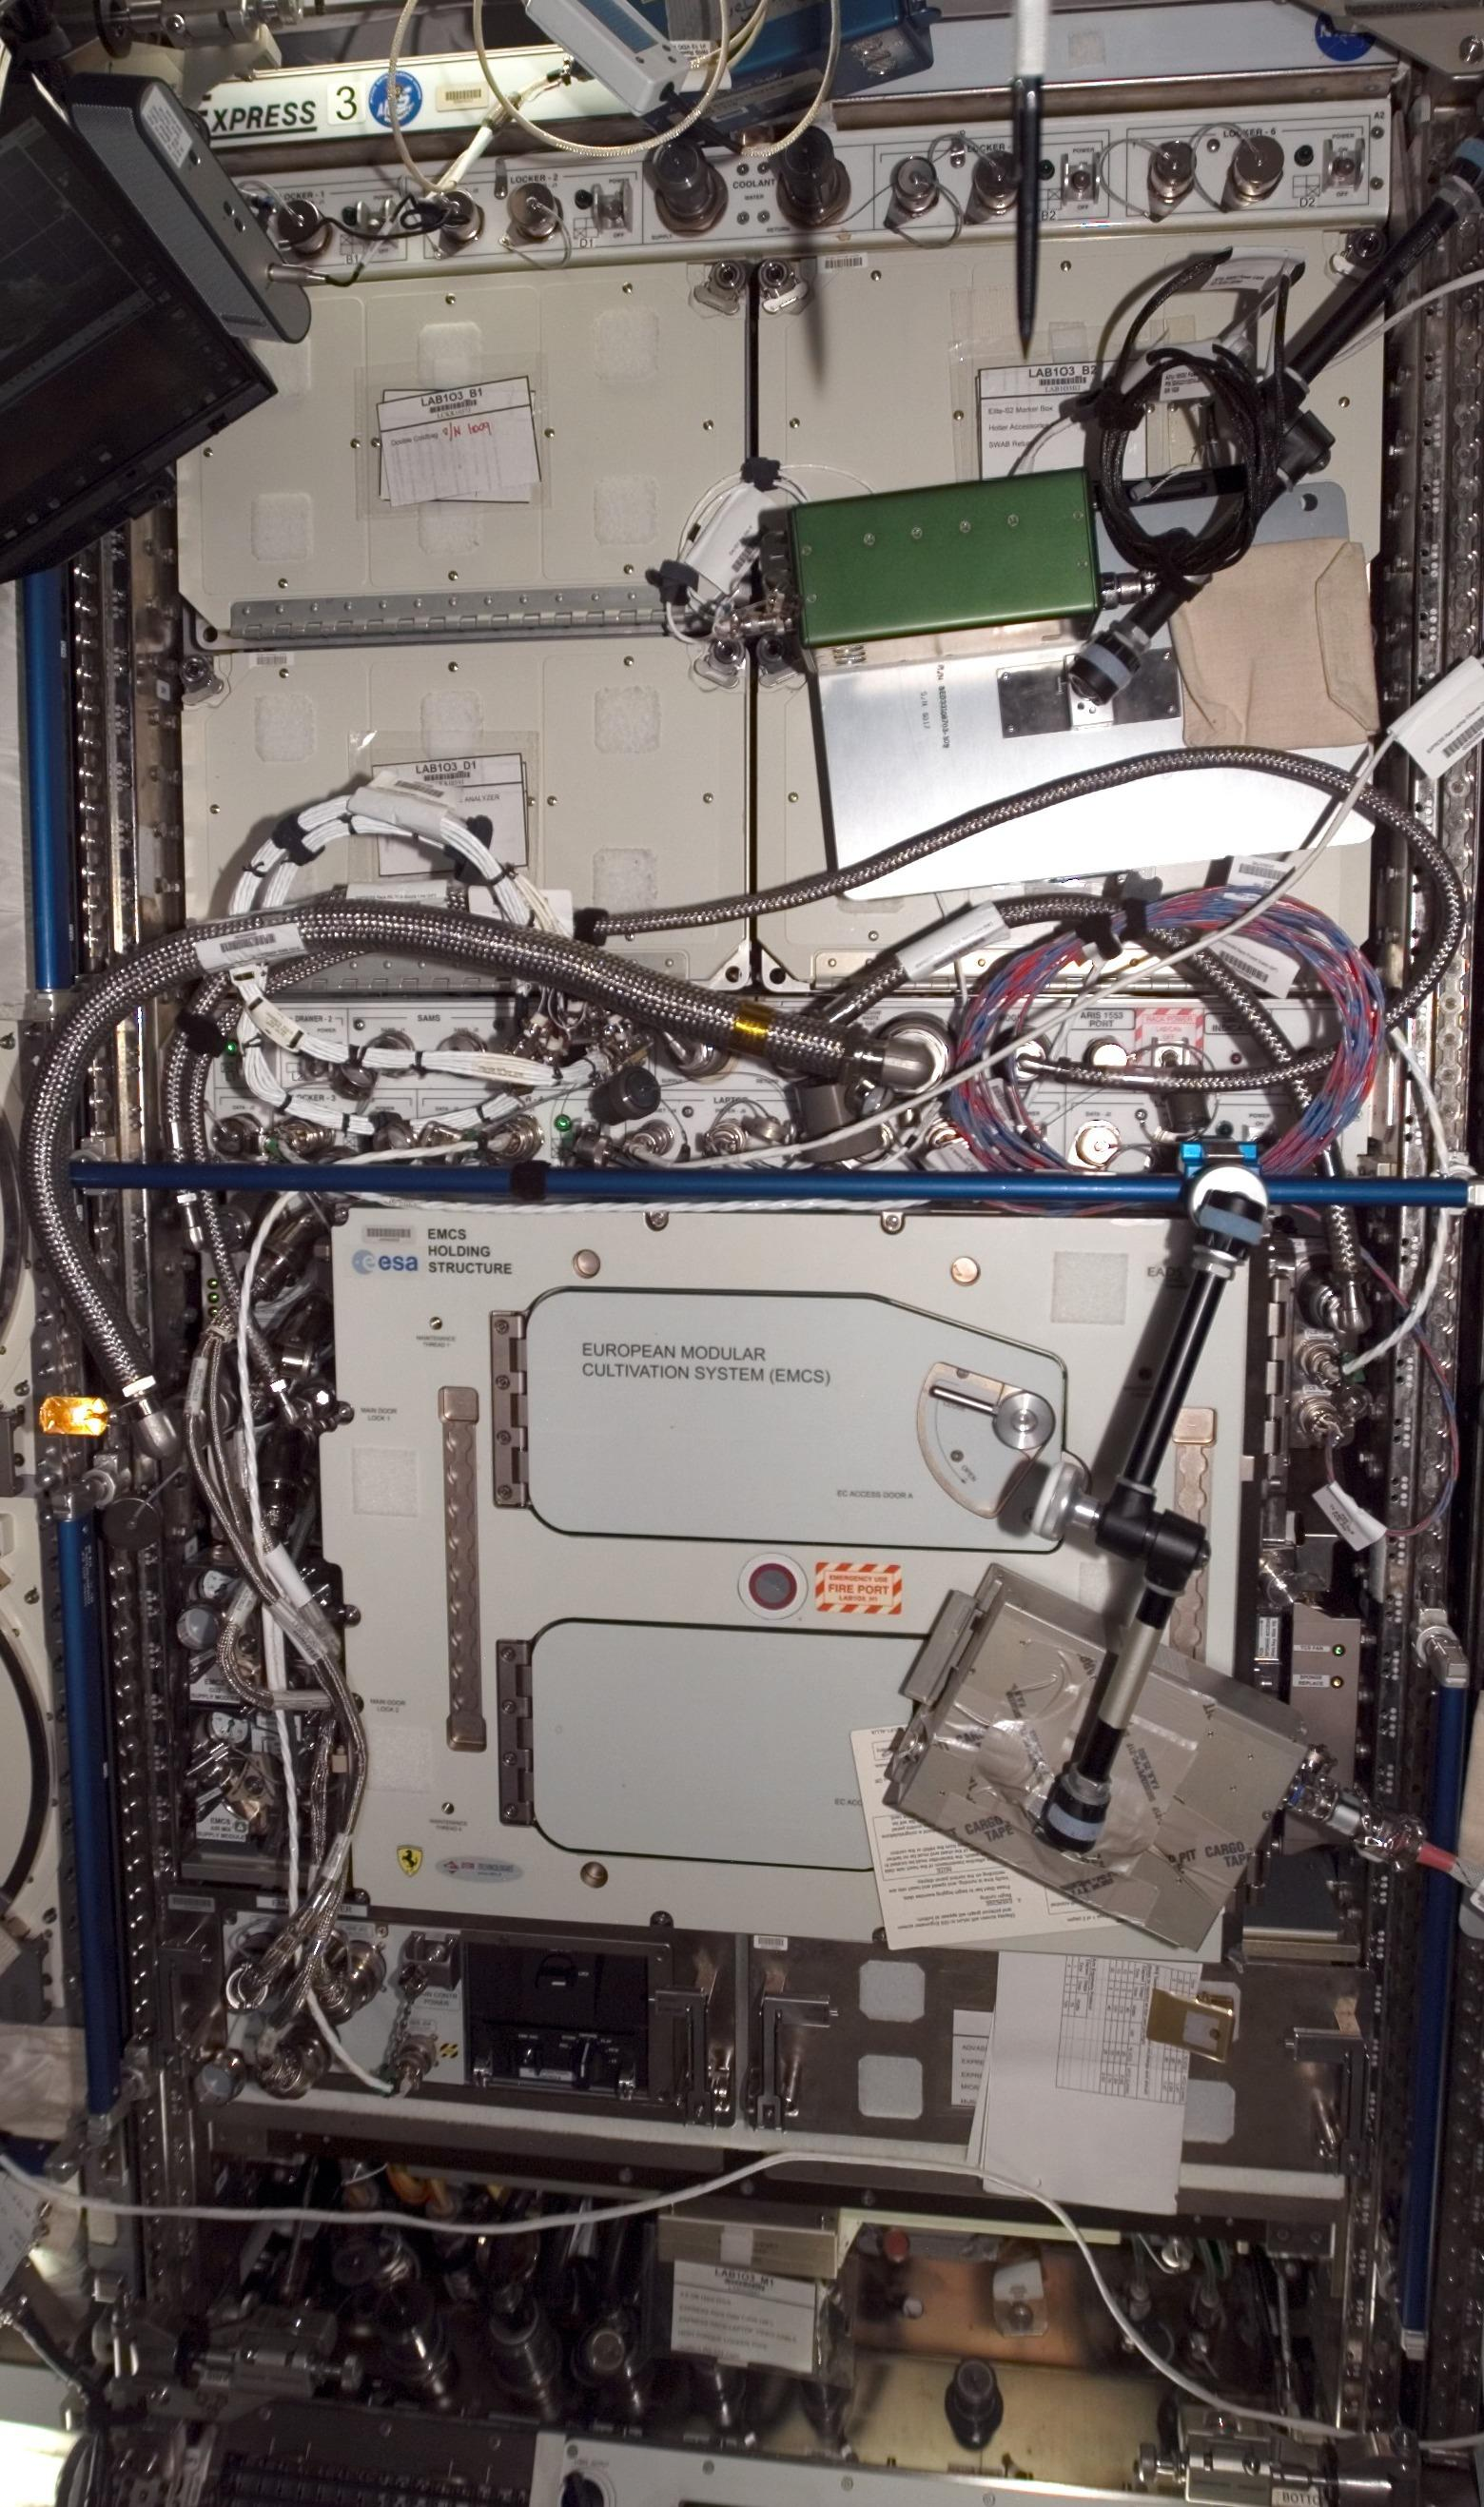 NASA - EXpedite the PRocessing of Experiments for Space Station Racks